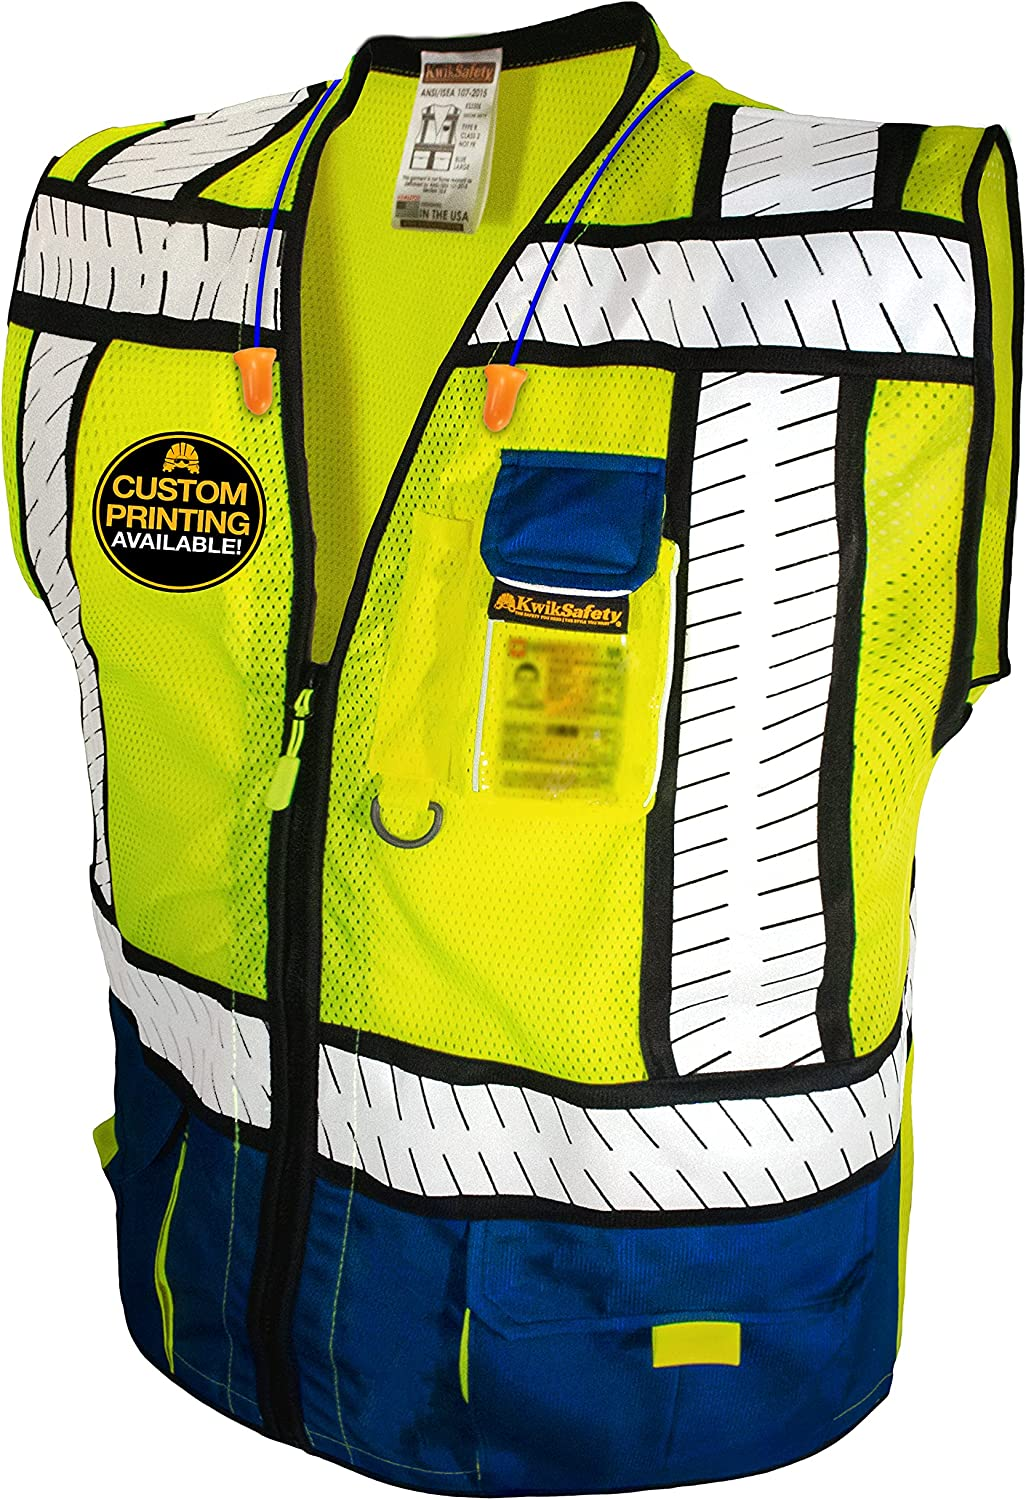 SPECIALIST SHERIFF FAMILY FBA Max 85% OFF Class 2021new shipping free shipping Fishbone Hi 2 Visibility